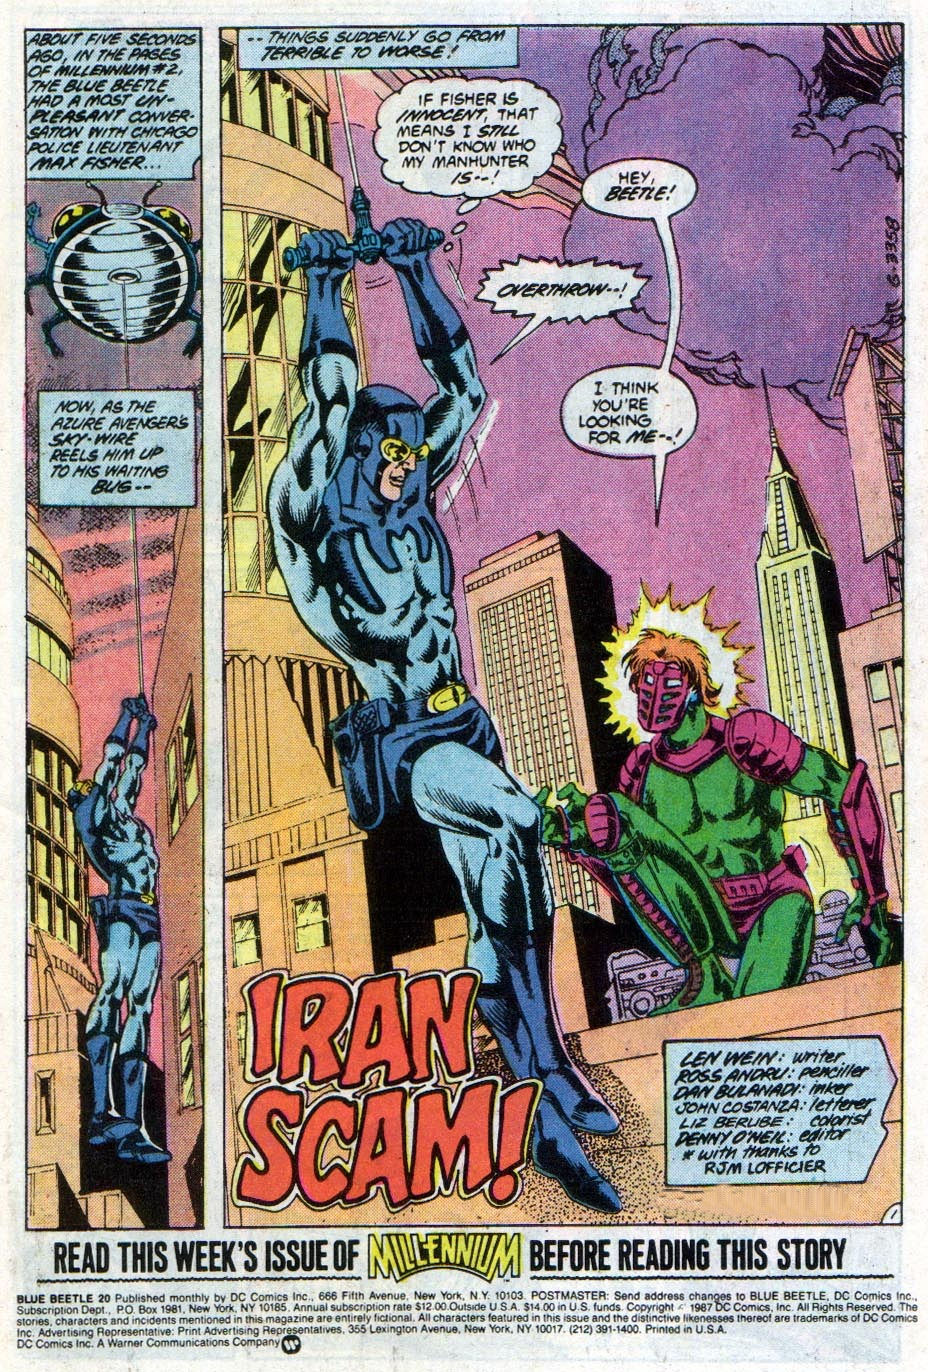 Blue Beetle (1986) #20 pg1, penciled by Ross Andru, inked by Dan Bulanadi, & colored by Liz Berube.